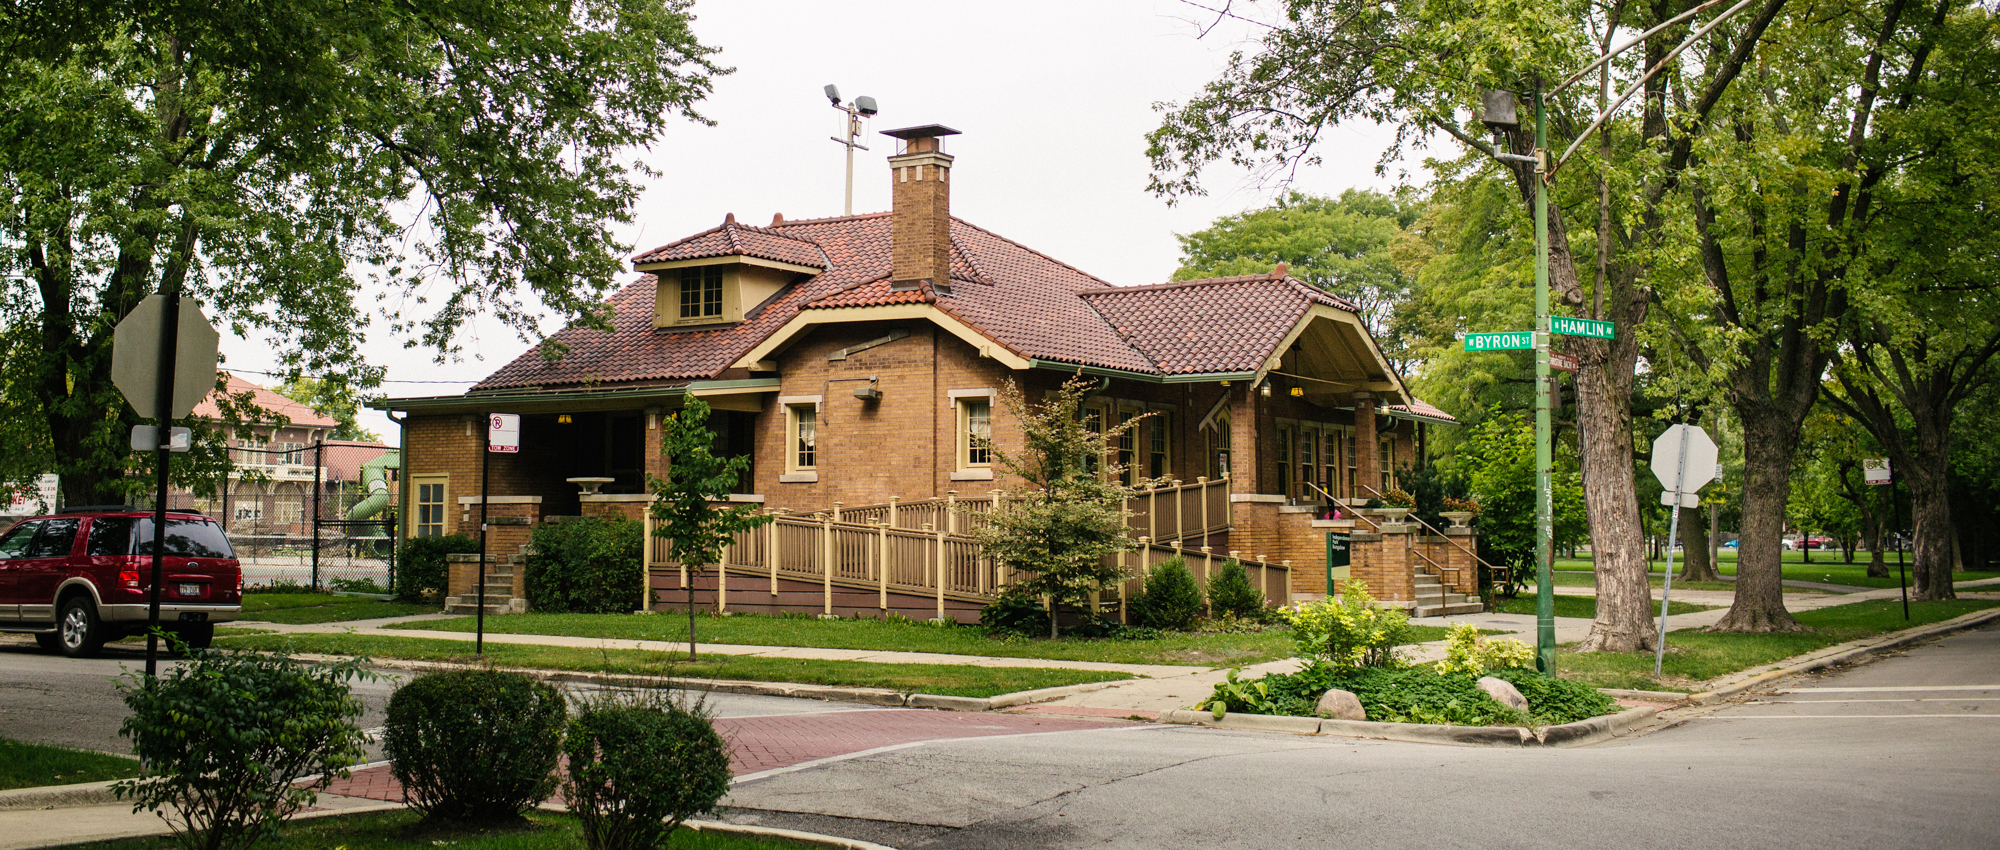 The Bungalow was gifted to Independence Park in 1936.